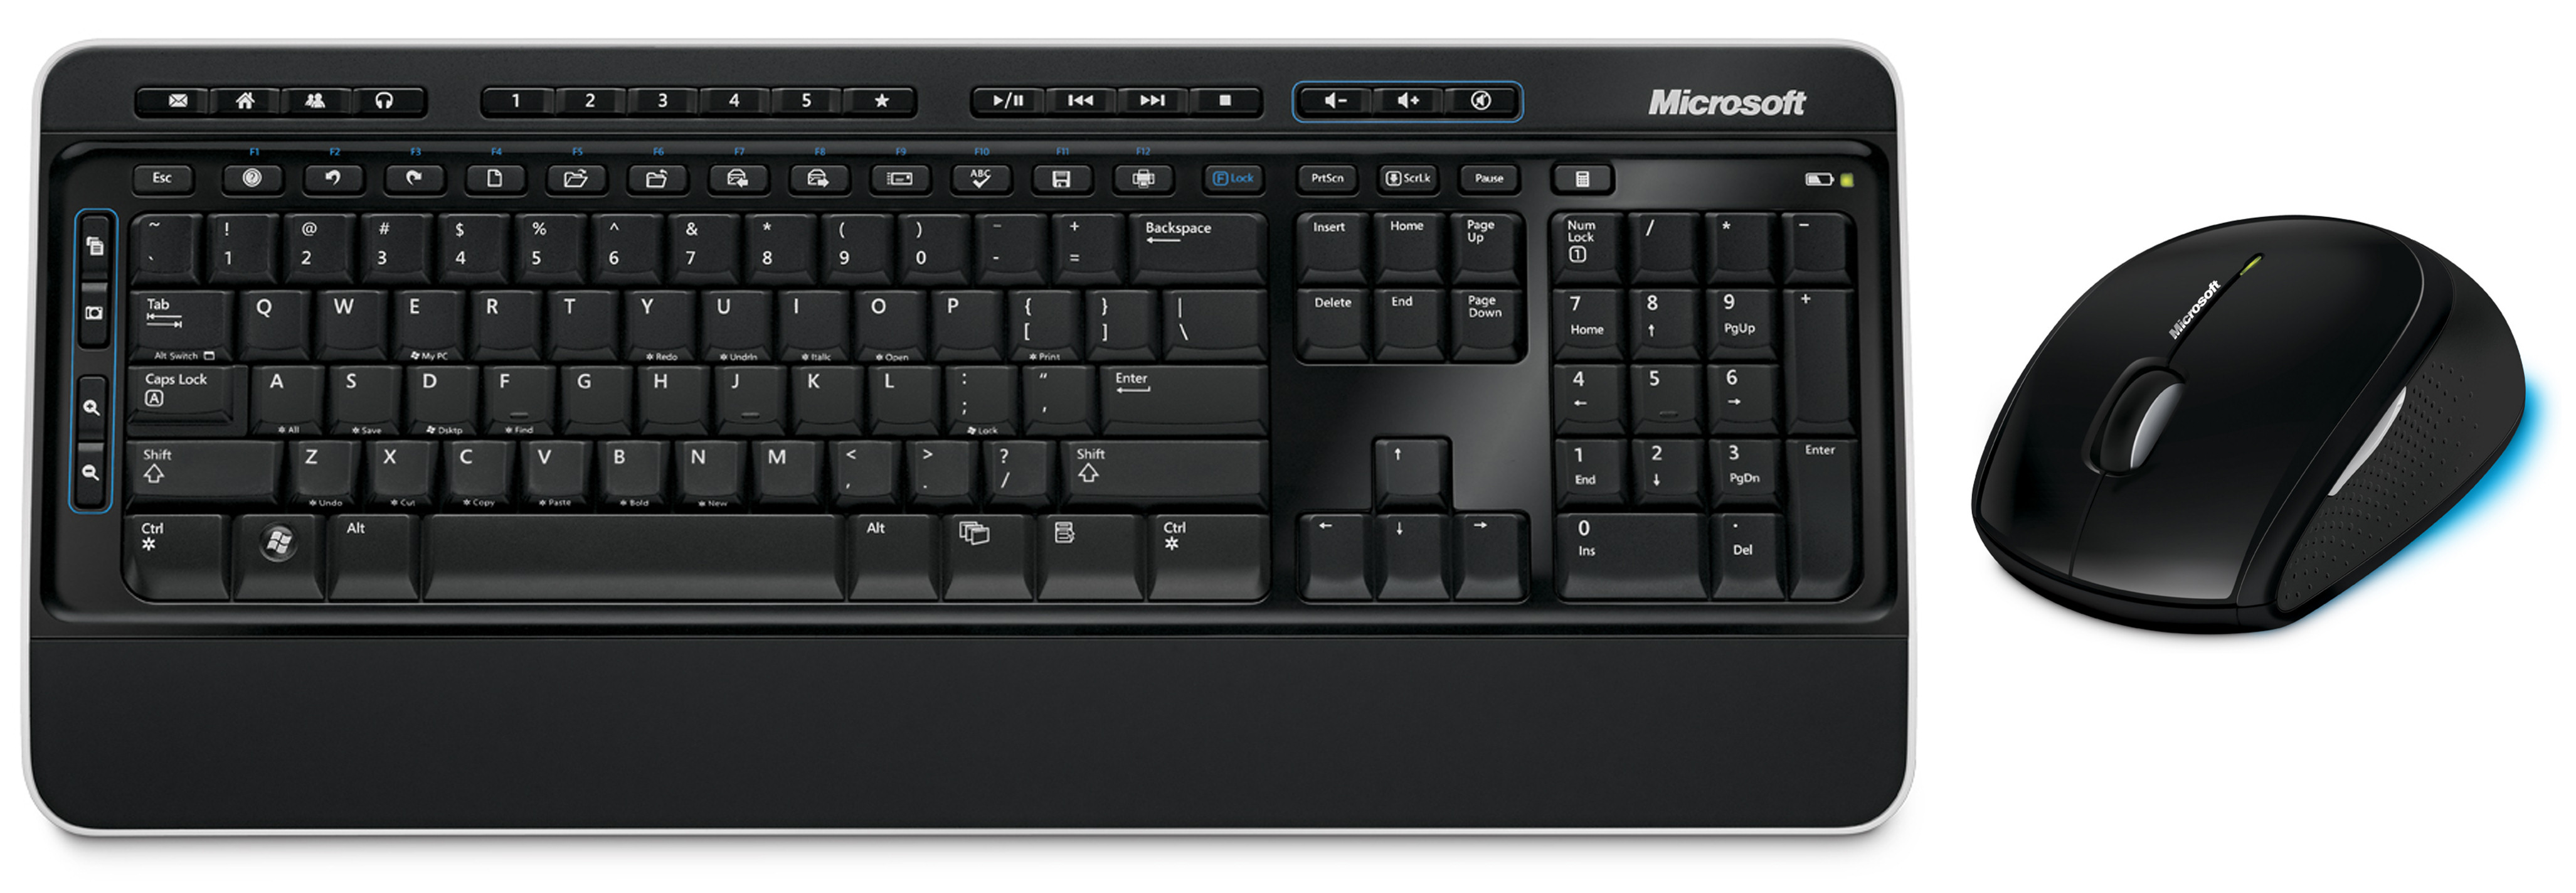 Desktop 3000 Wireless Keyboard And Mouse Uk Layout